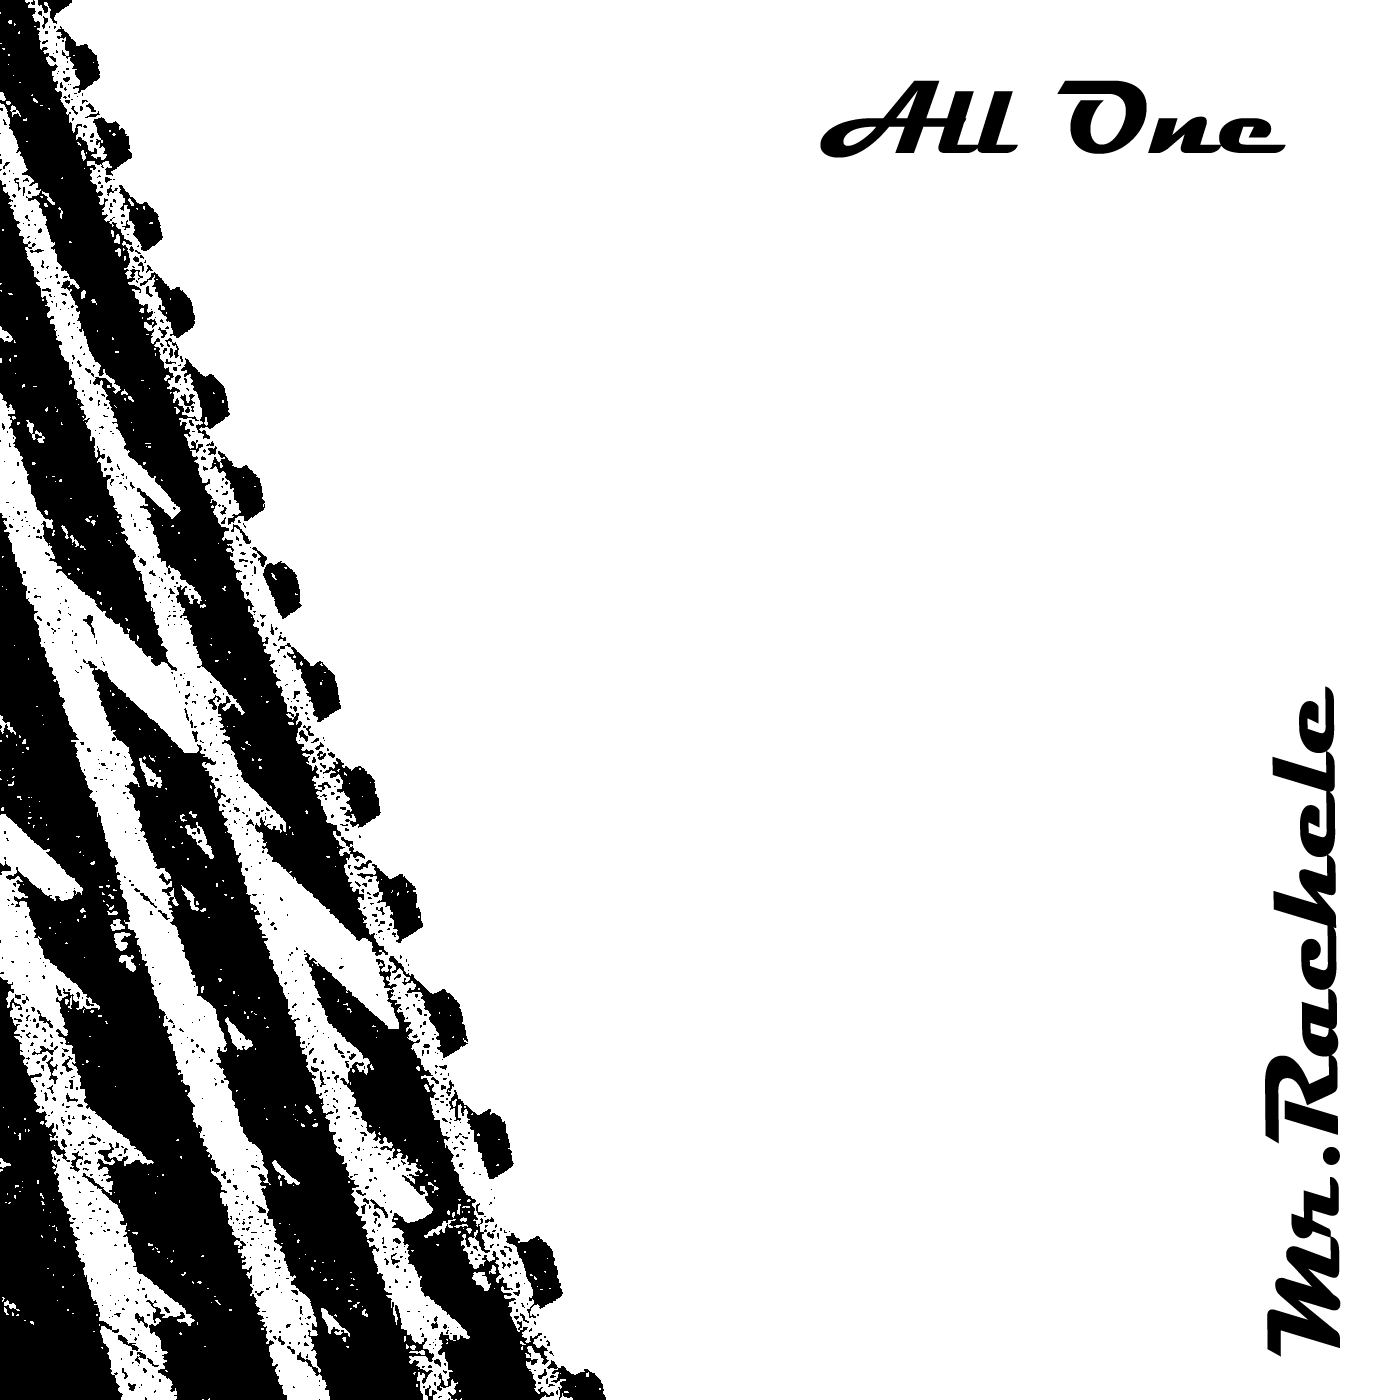 NEW ALBUM 'ALL ONE' ON BANDCAMP